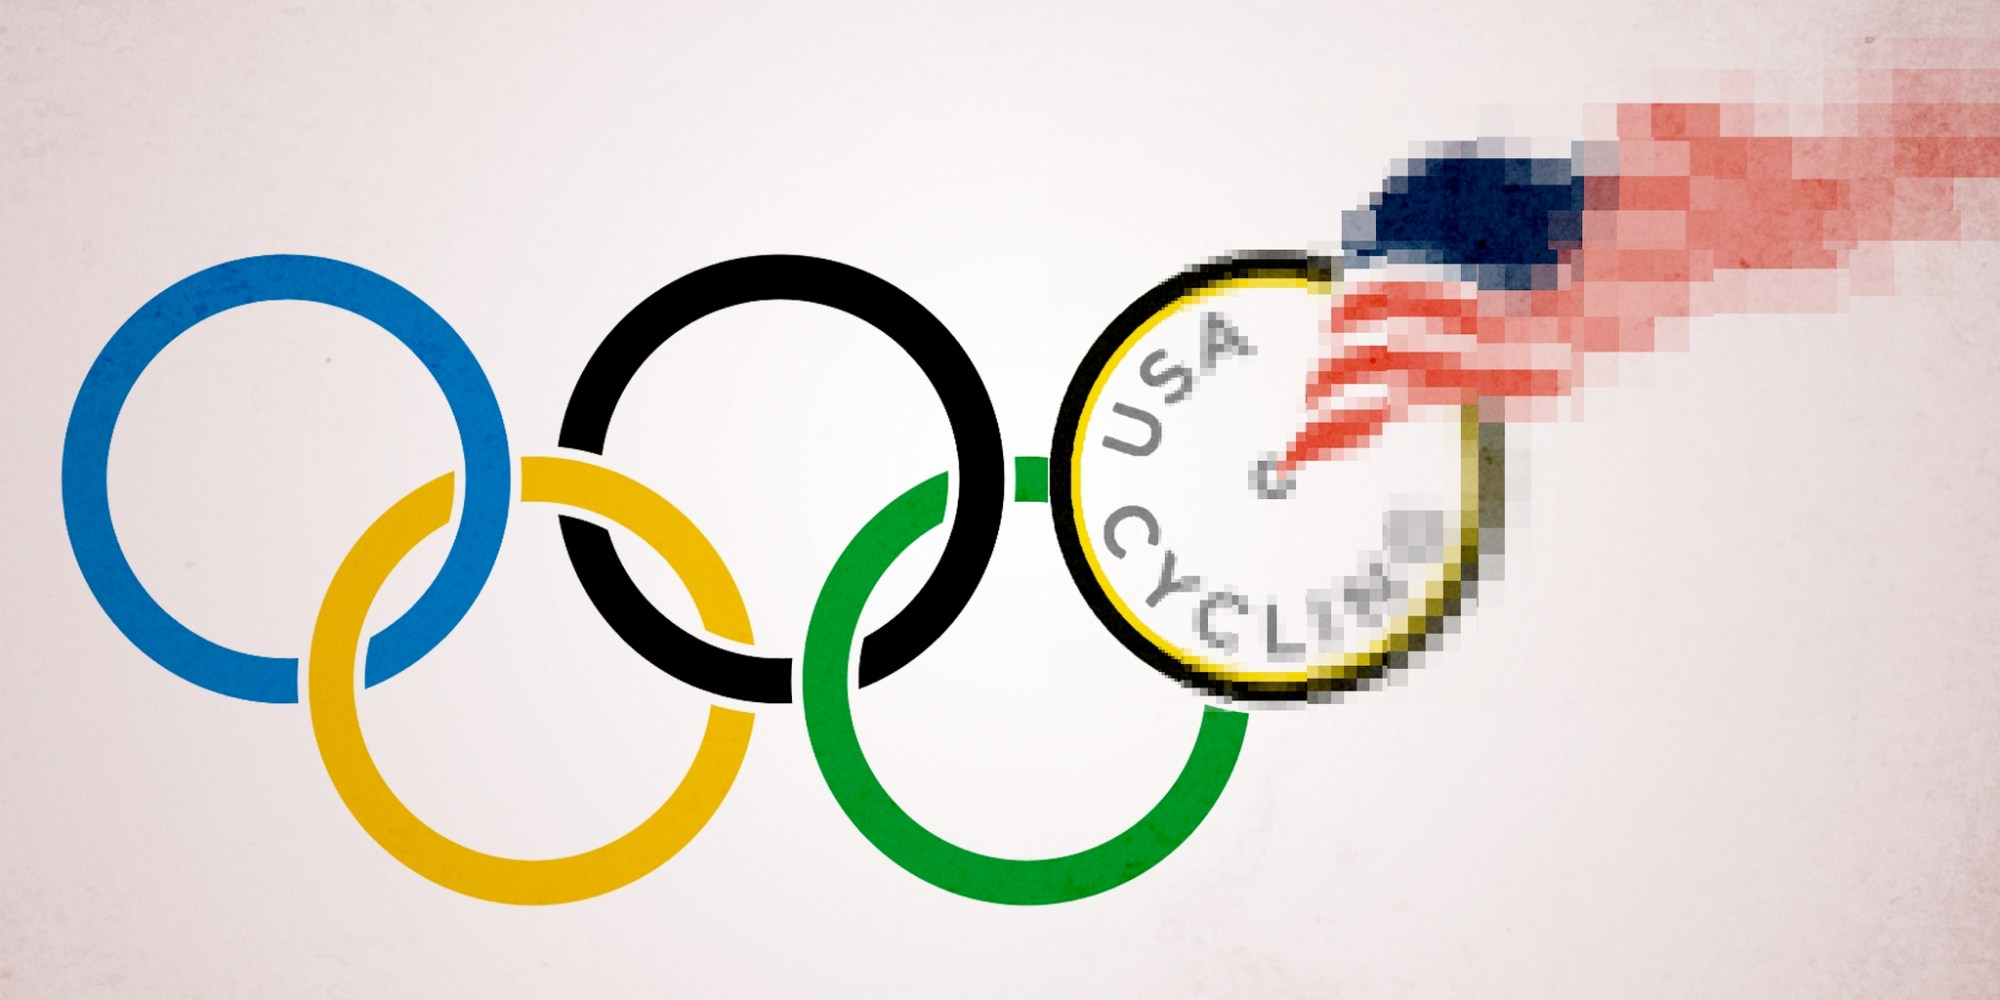 hight resolution of 260x320 gold medal olympic medal trophy clip art 2048x1024 ibm s sensorsdalytics powered usa women s cycling to